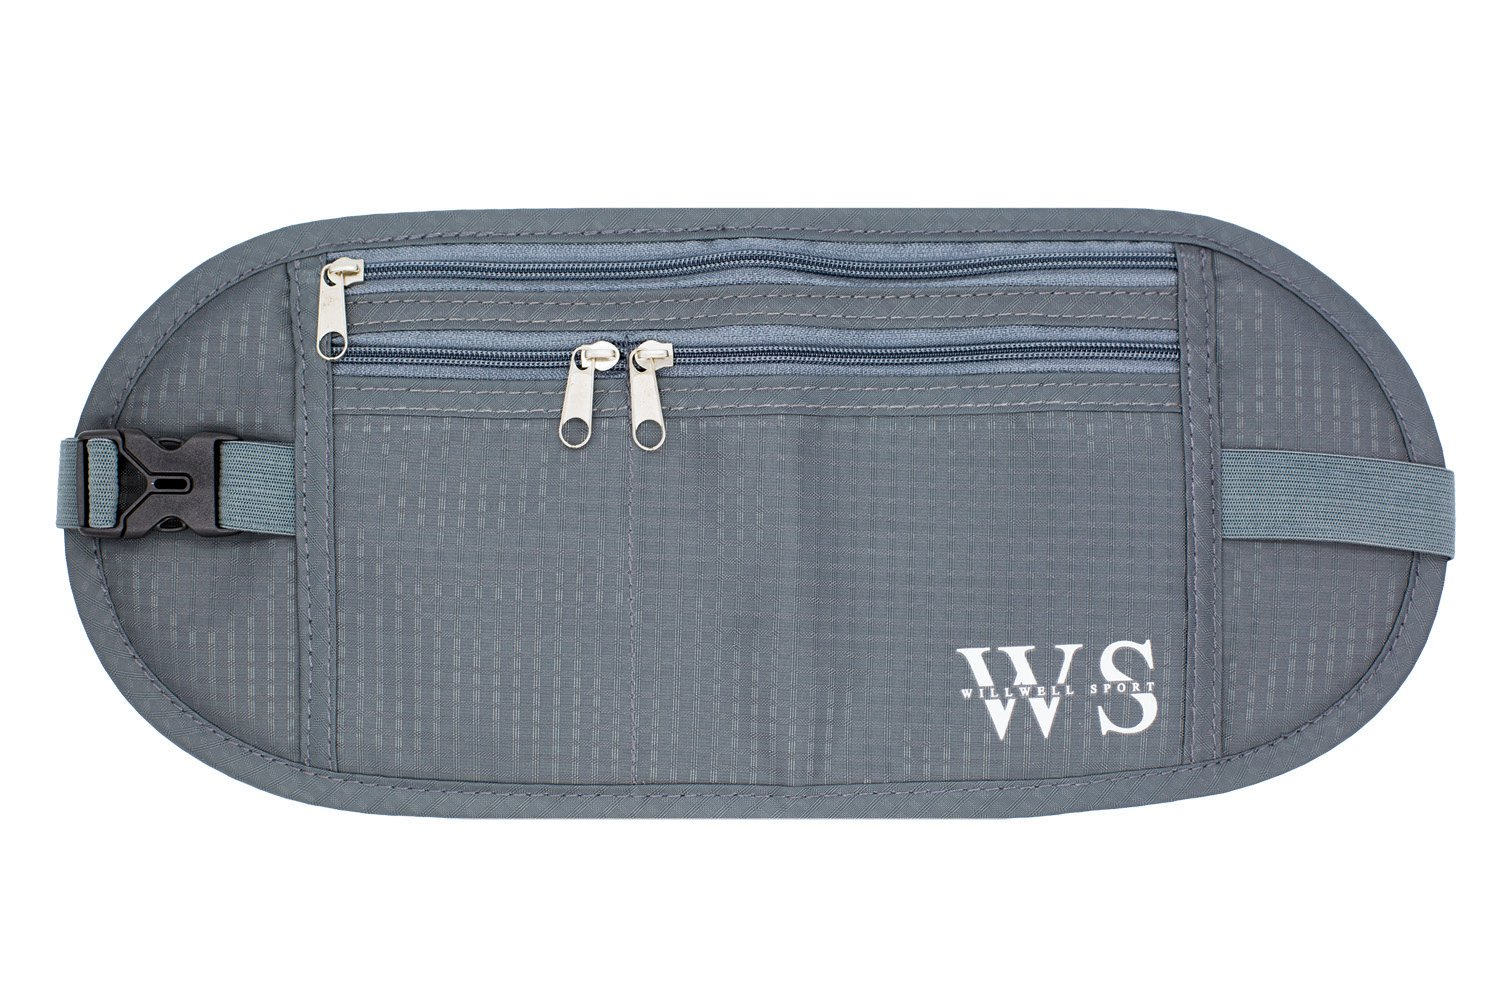 WILLWELL SPORT Money Belt Hidden Security Pouch Waterproof & Lightweight Bumbag – for Adults & Kids – RFID Fabric – for Your Conceal Valuable (Grey)